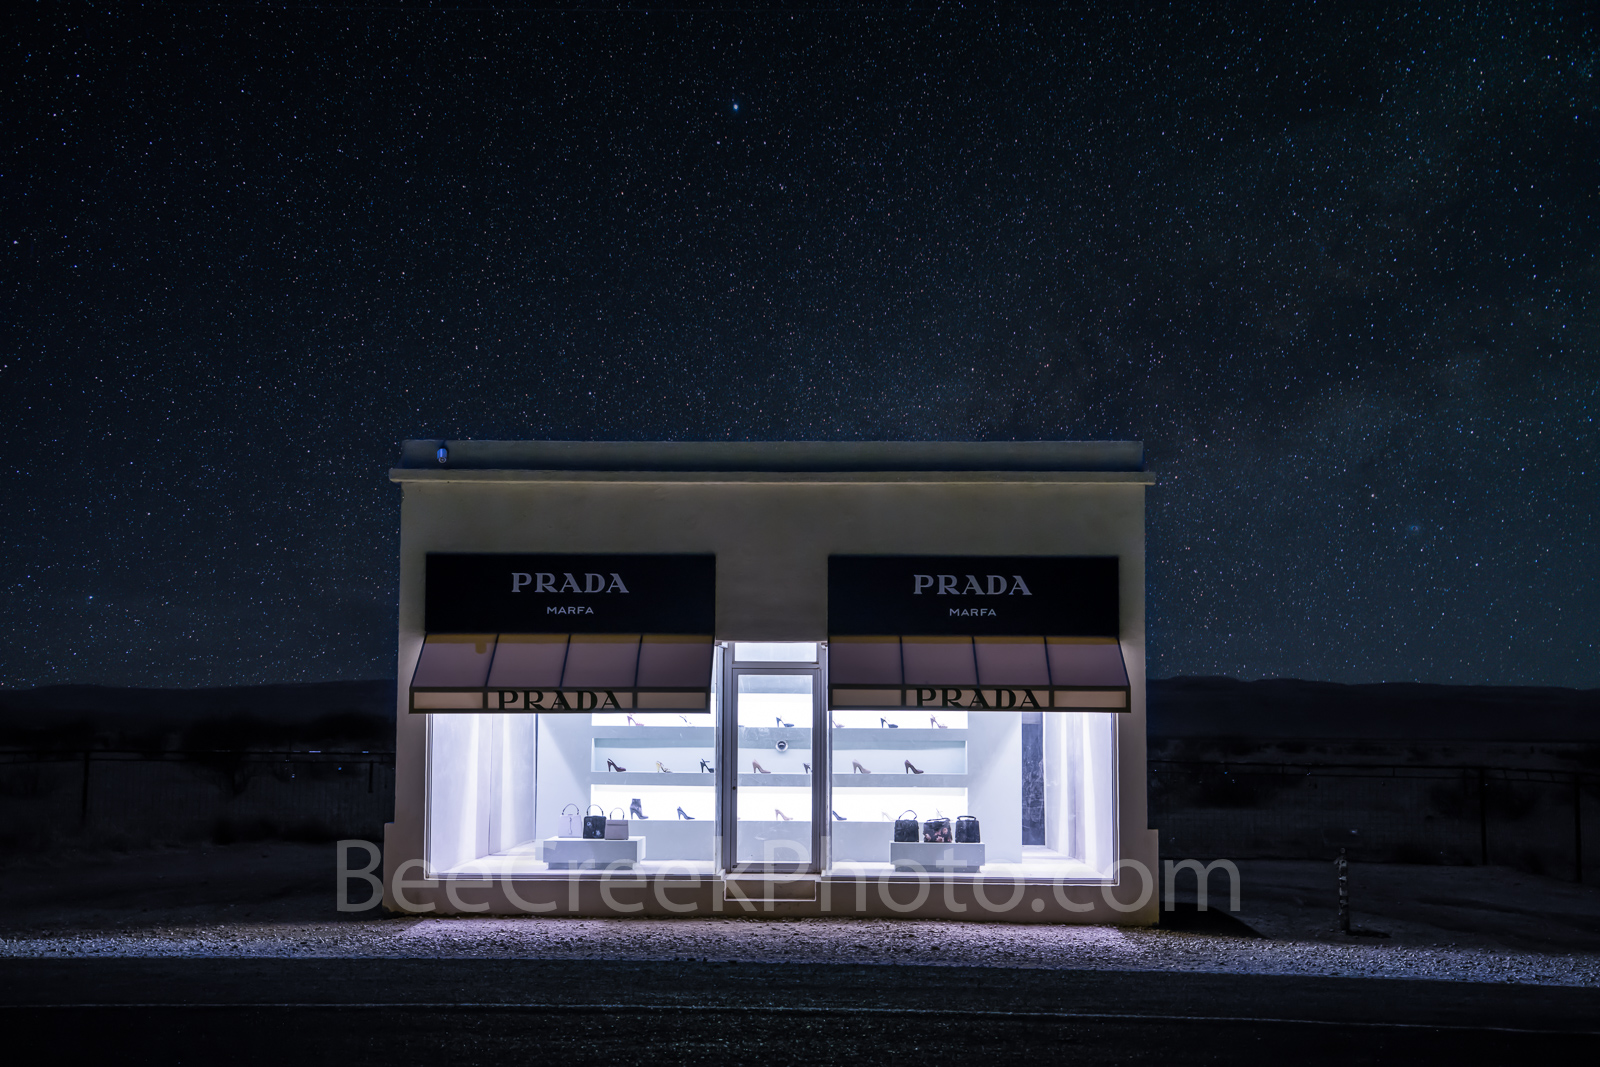 Prada Marfa, stars, night, dark, Marfa lights, west texas, starry, night skies, pop art, artist, Elmgreen and Dragset, pop architectural land art, shoes, purses, store front, west texas landscape,